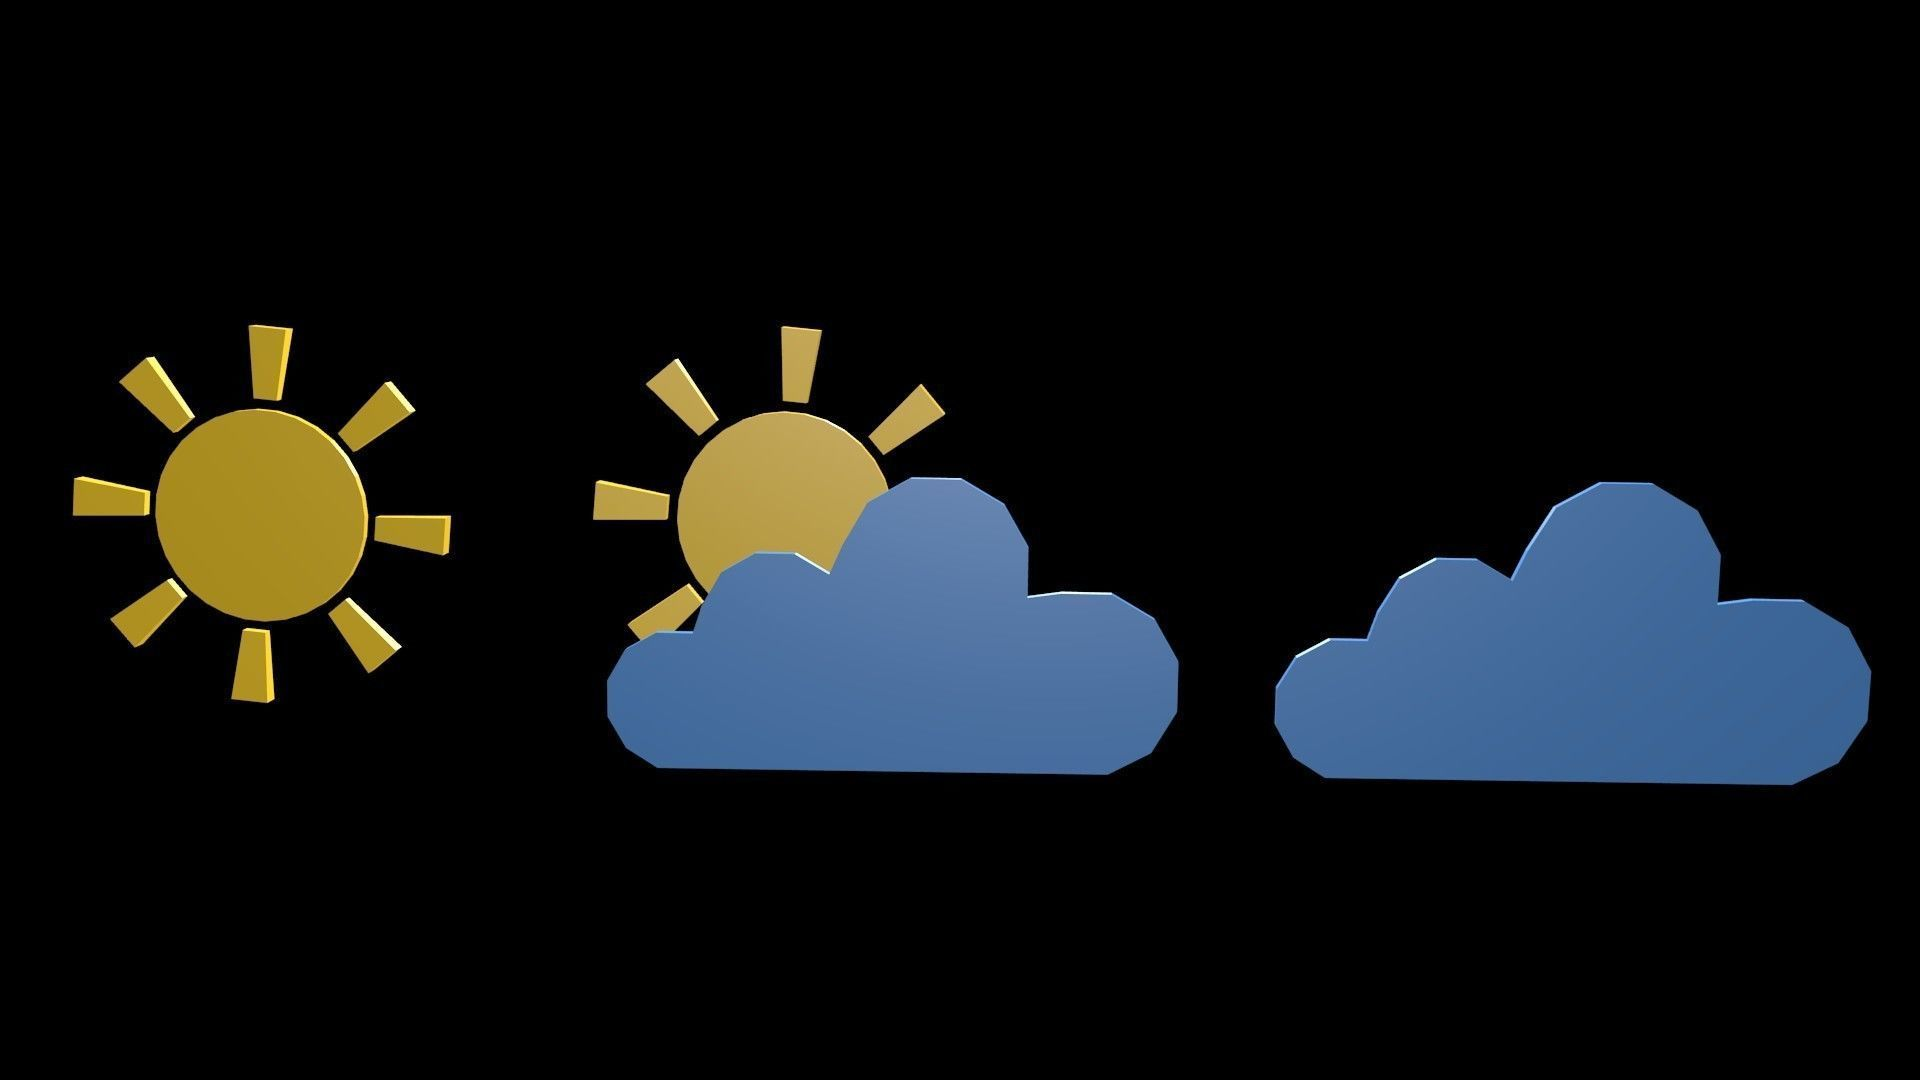 Low poly weather symbol